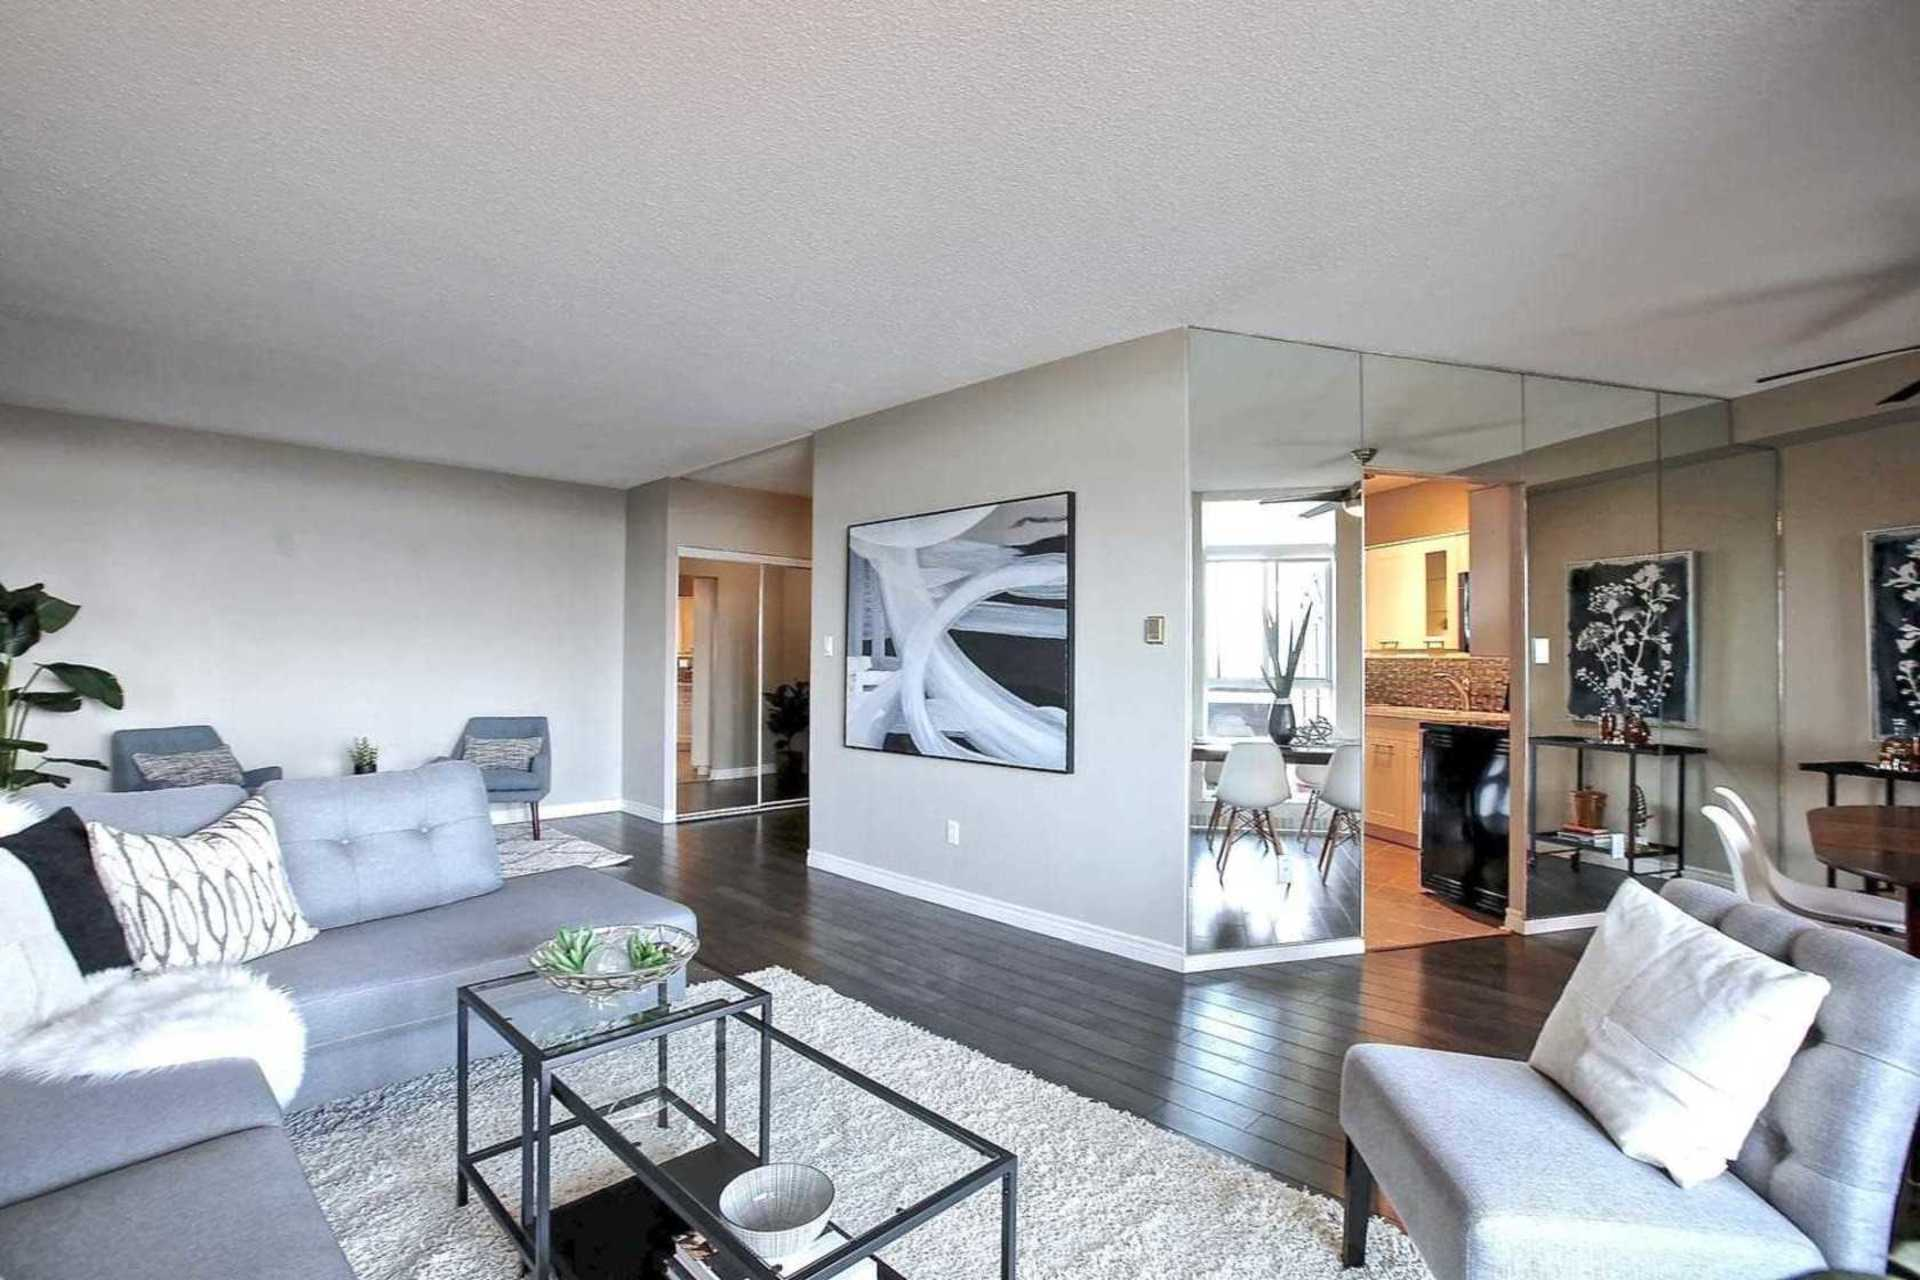 Open Concept Living Room/Dining Room at 1809 - 5250 Lakeshore Road, Appleby, Burlington